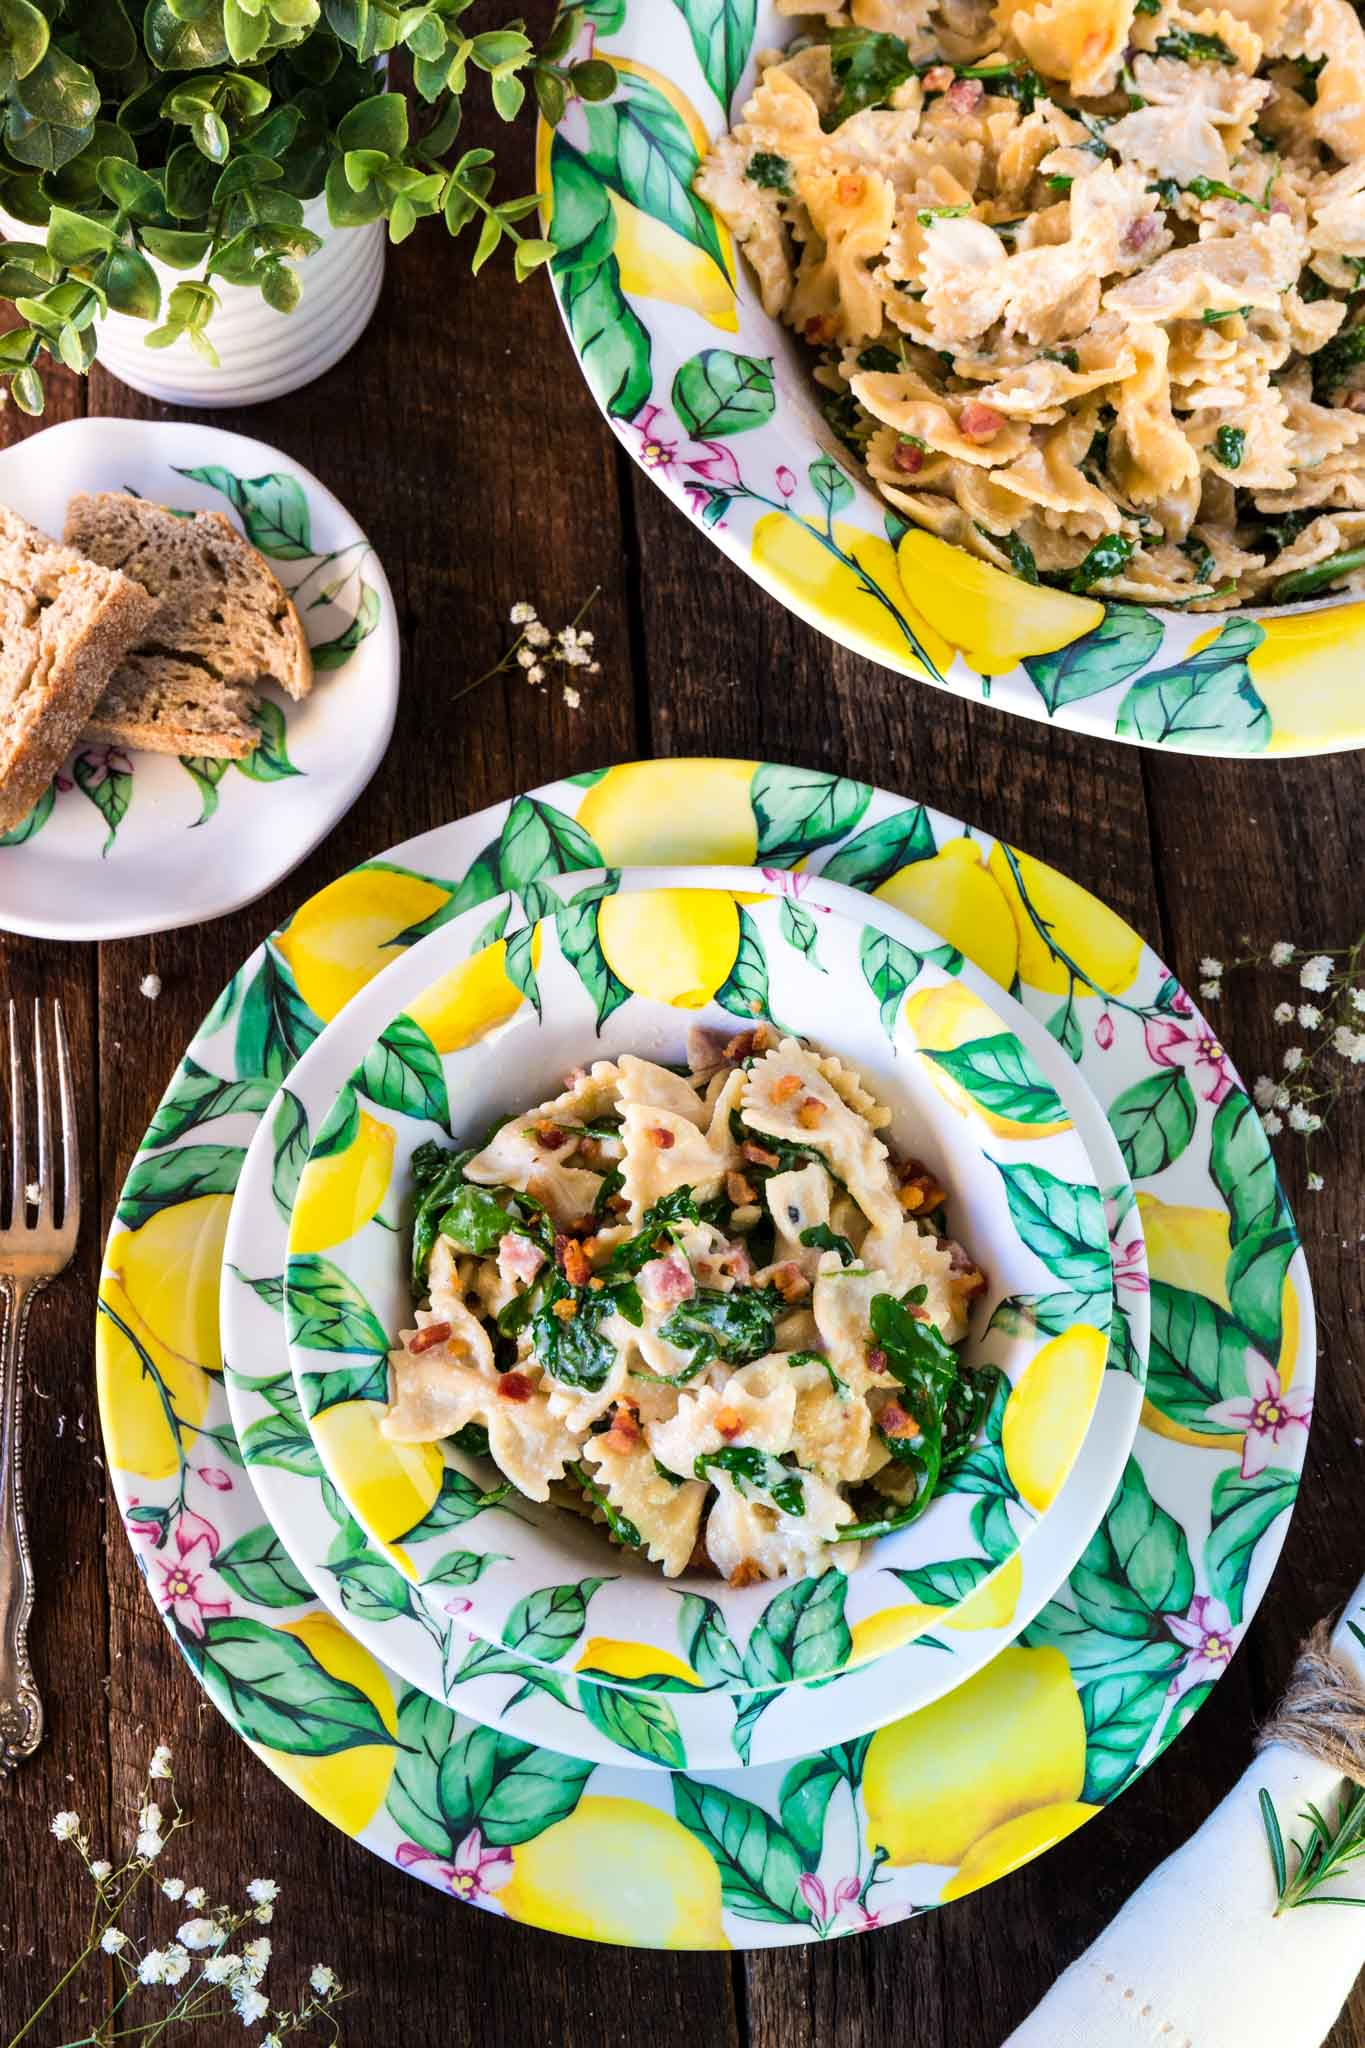 Farfalle with Pancetta, Arugula and Lemon Cream Sauce | www.oliviascuisine.com | A pasta dish that embodies all the things we love about spring and summer. Fresh, colorful and tied together with a lip smacking lemon cream sauce that is to die for! Featuring the beautiful Q Squared NYC's Limonata Collection. (Recipe by @oliviascuisine.)